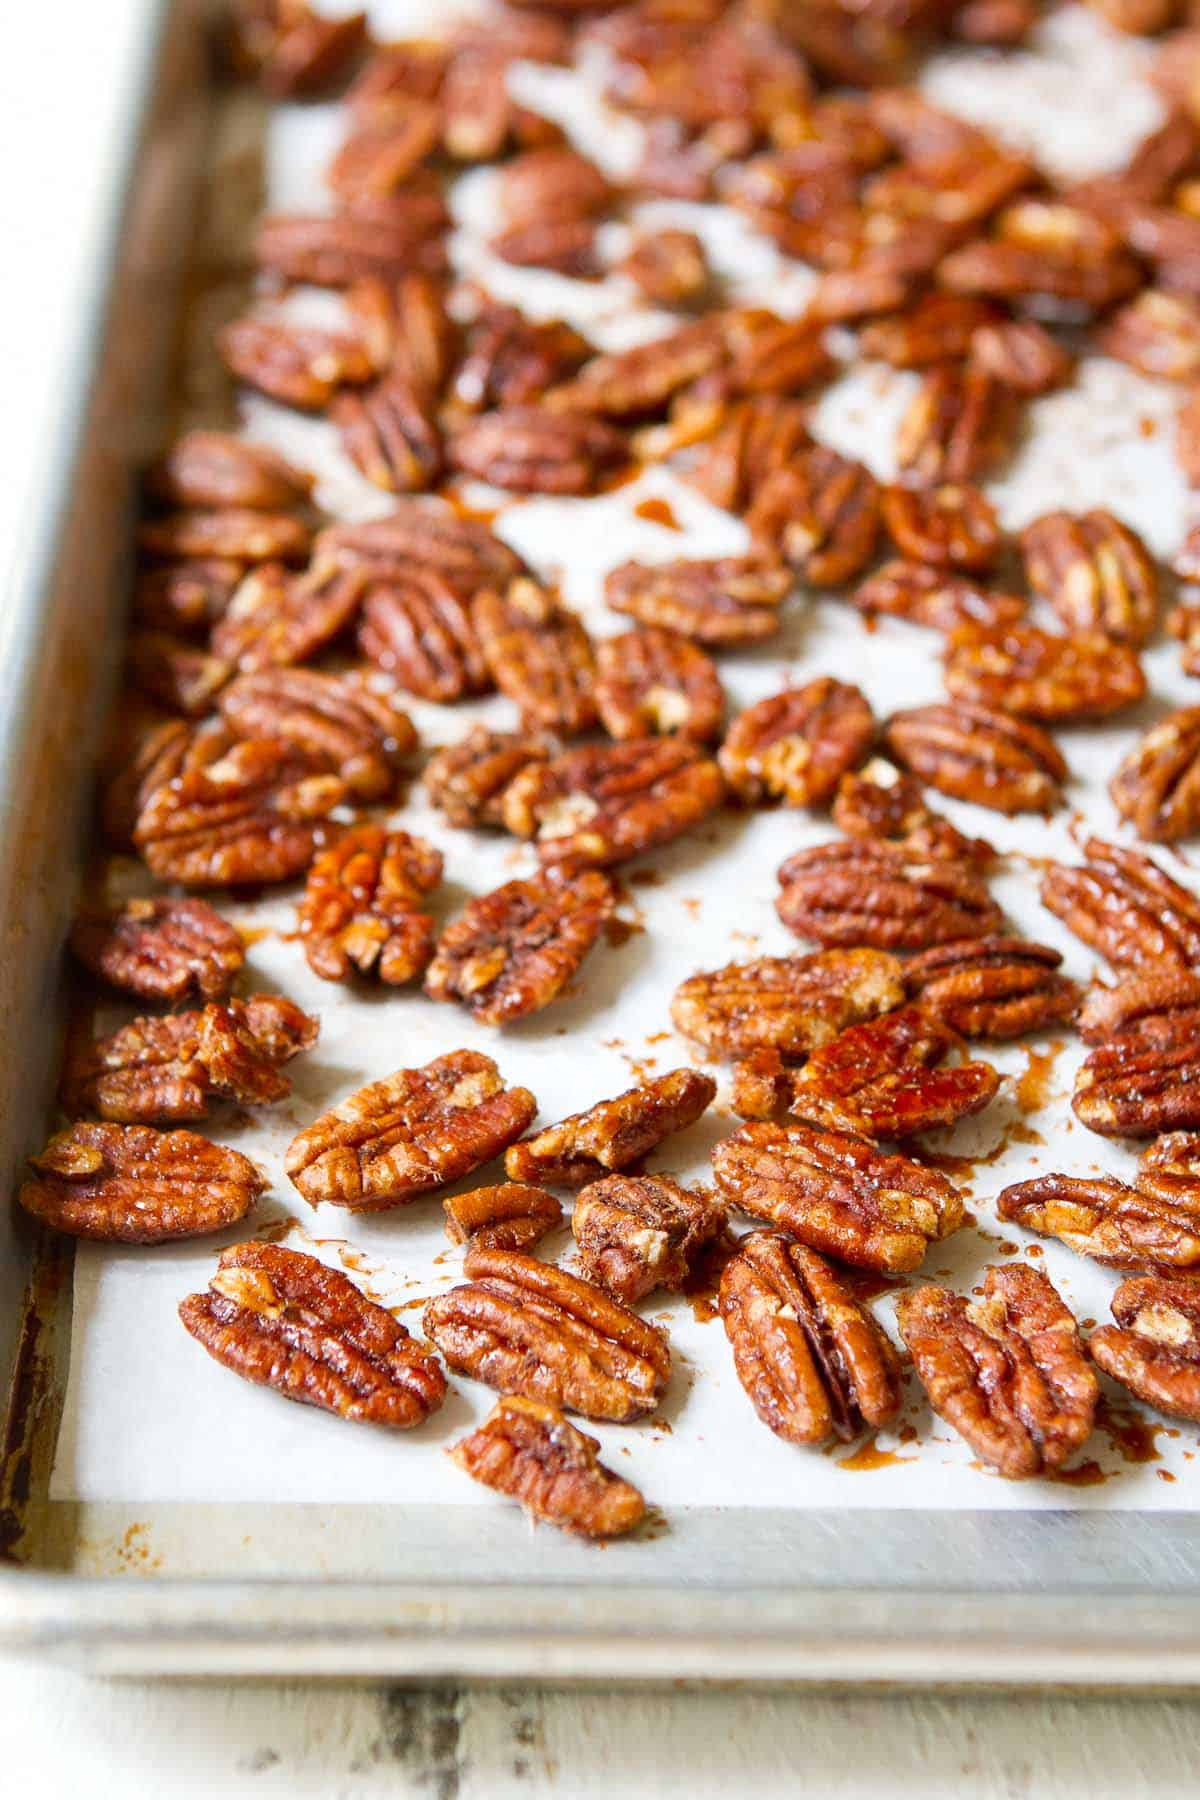 Maple syrup glazed pecans on a baking sheet.